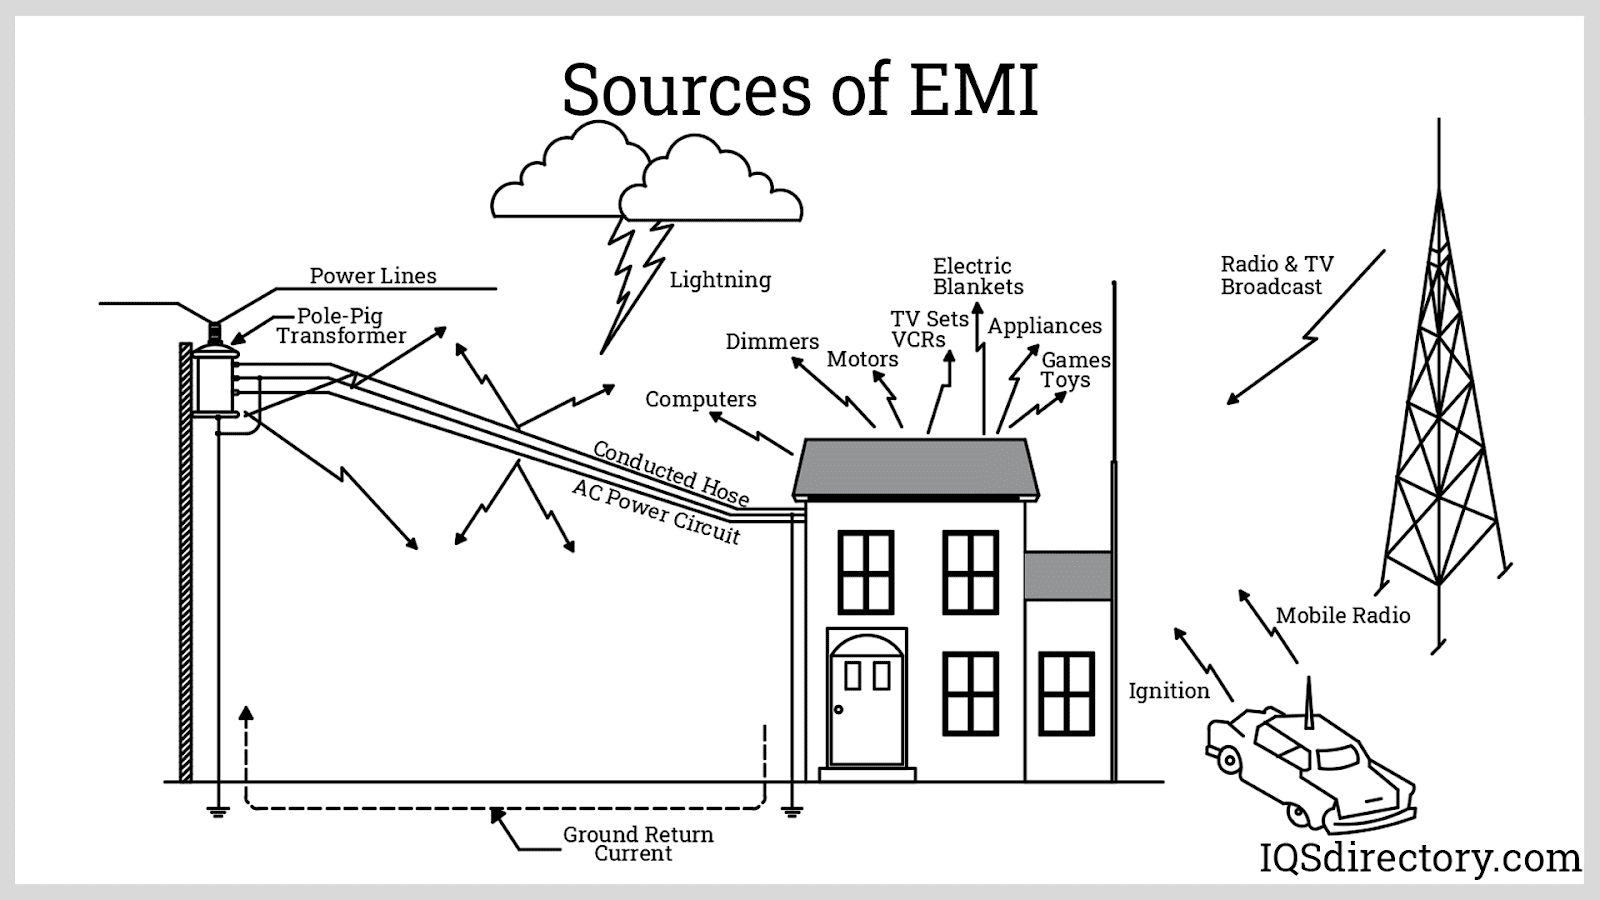 Sources of EMI